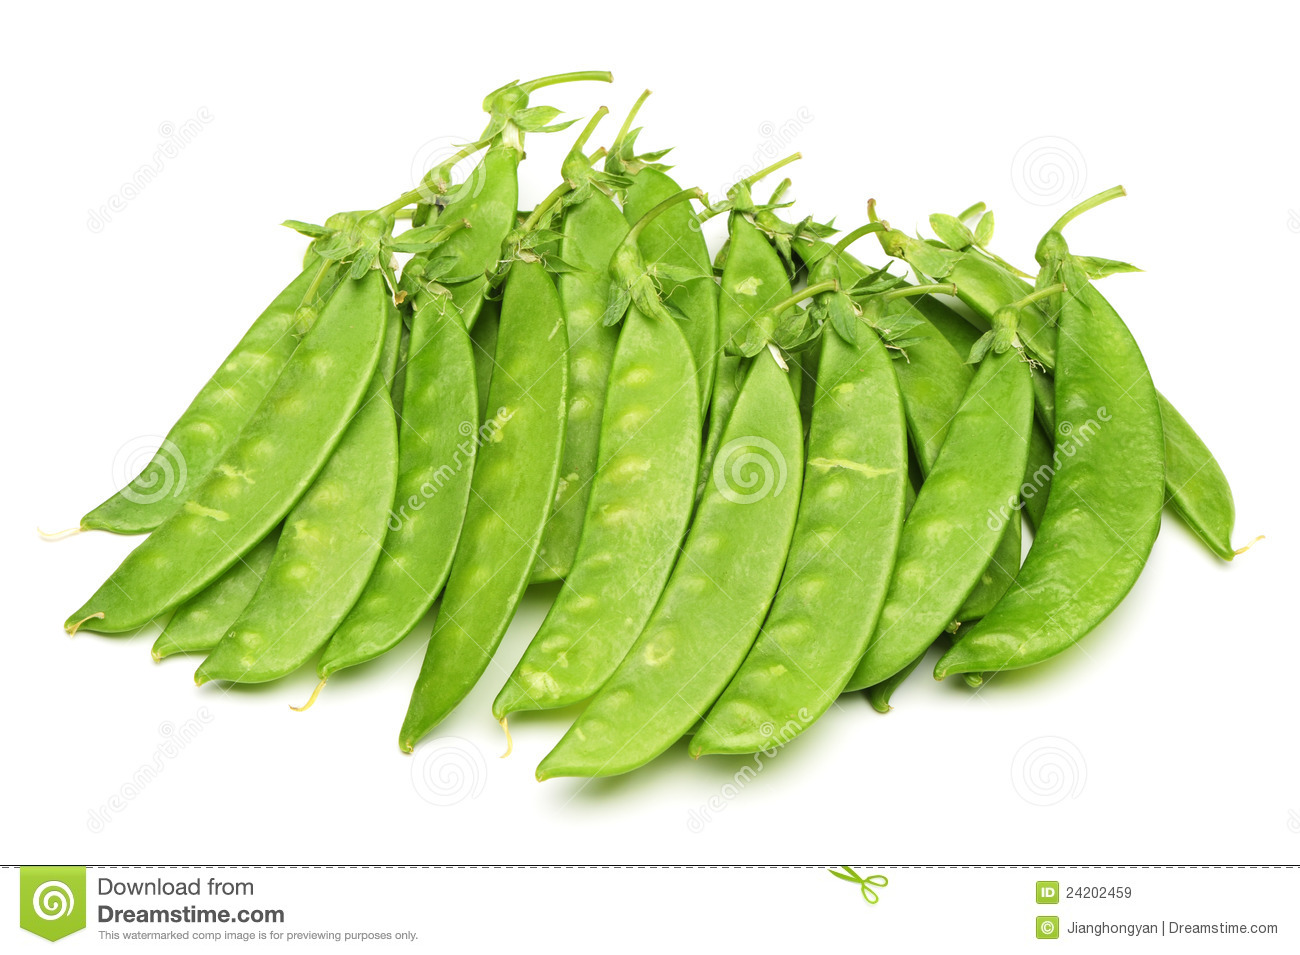 Vso 绿豆的生长过程 further Using The 5 Flavours To Meet Your Bodys Needs likewise Black bean aphid in addition 1013847 Snow Peas as well Chinese Asparagus Pea Winged Pea Winged 1715871478. on growing winged beans